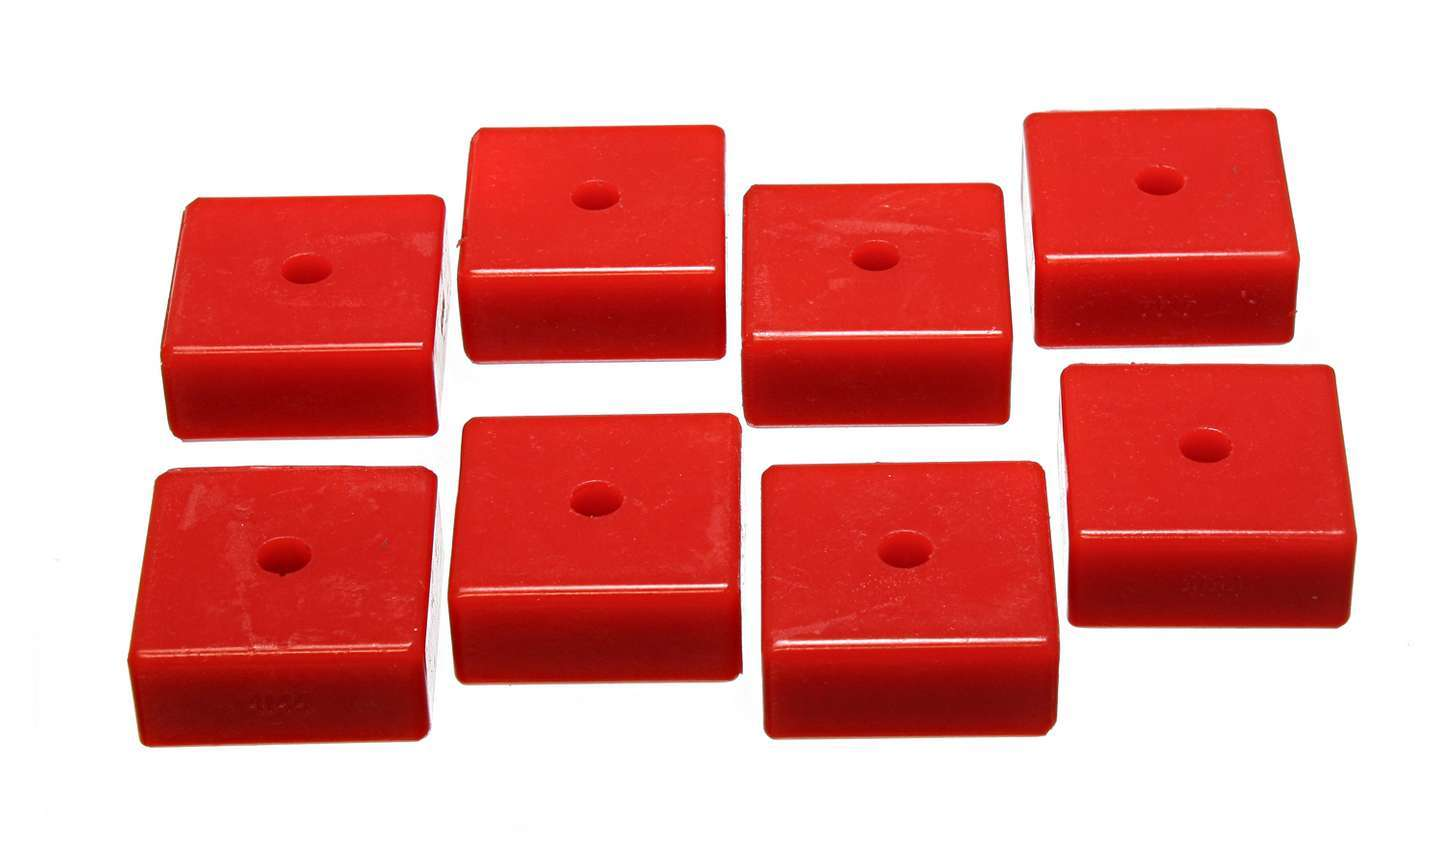 Energy Suspension 9-9535R Bushing Kit, Hyper-Flex, Leaf Spring Pad, 2-1/16 in Square x 3/8 in ID x 15/16 in Height, Polyurethane, Red, Kit